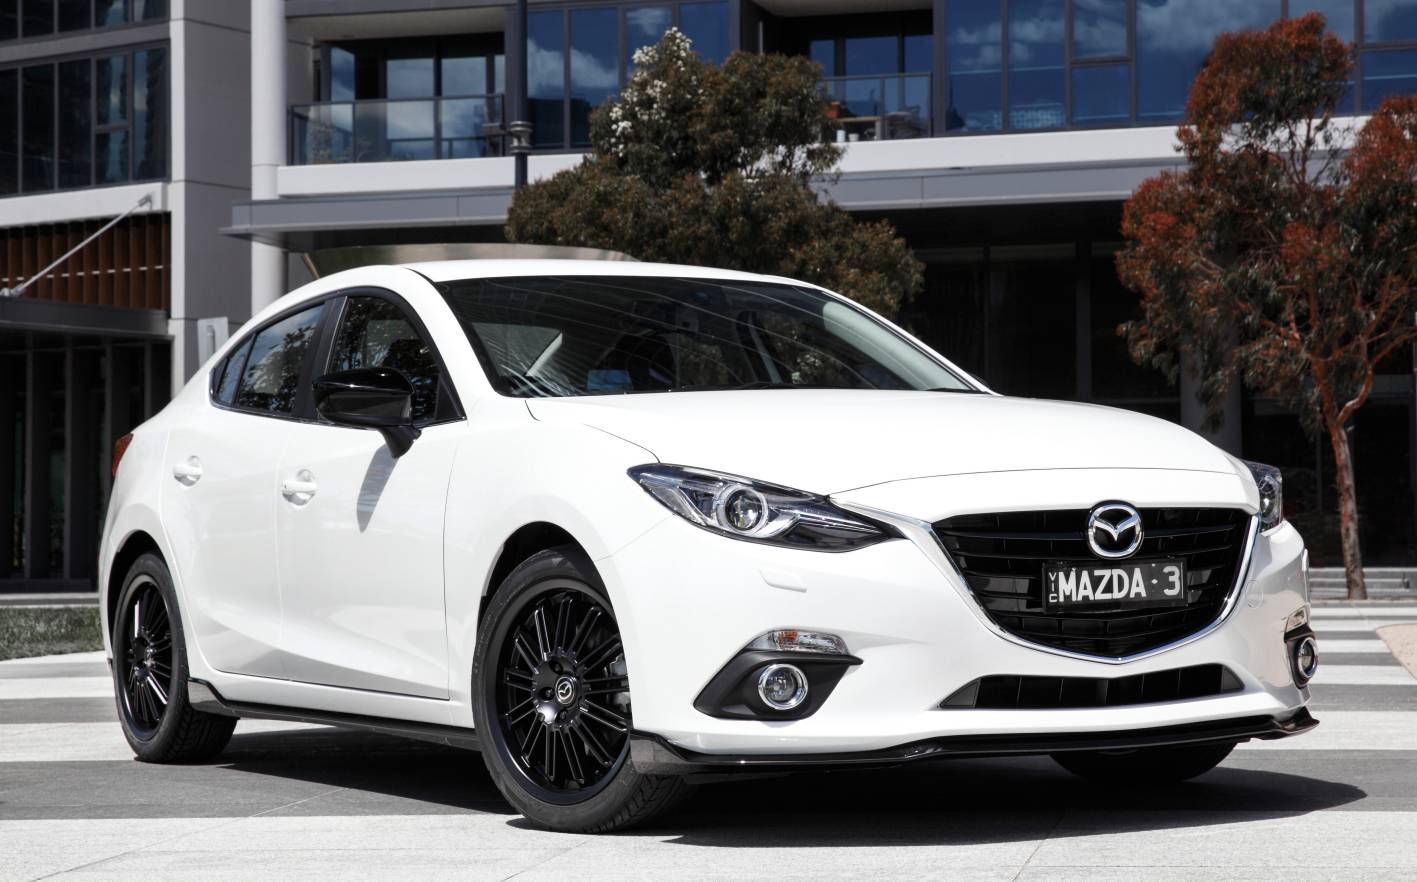 Mazda Cars - News: 2014 Mazda3 launched from $20,490